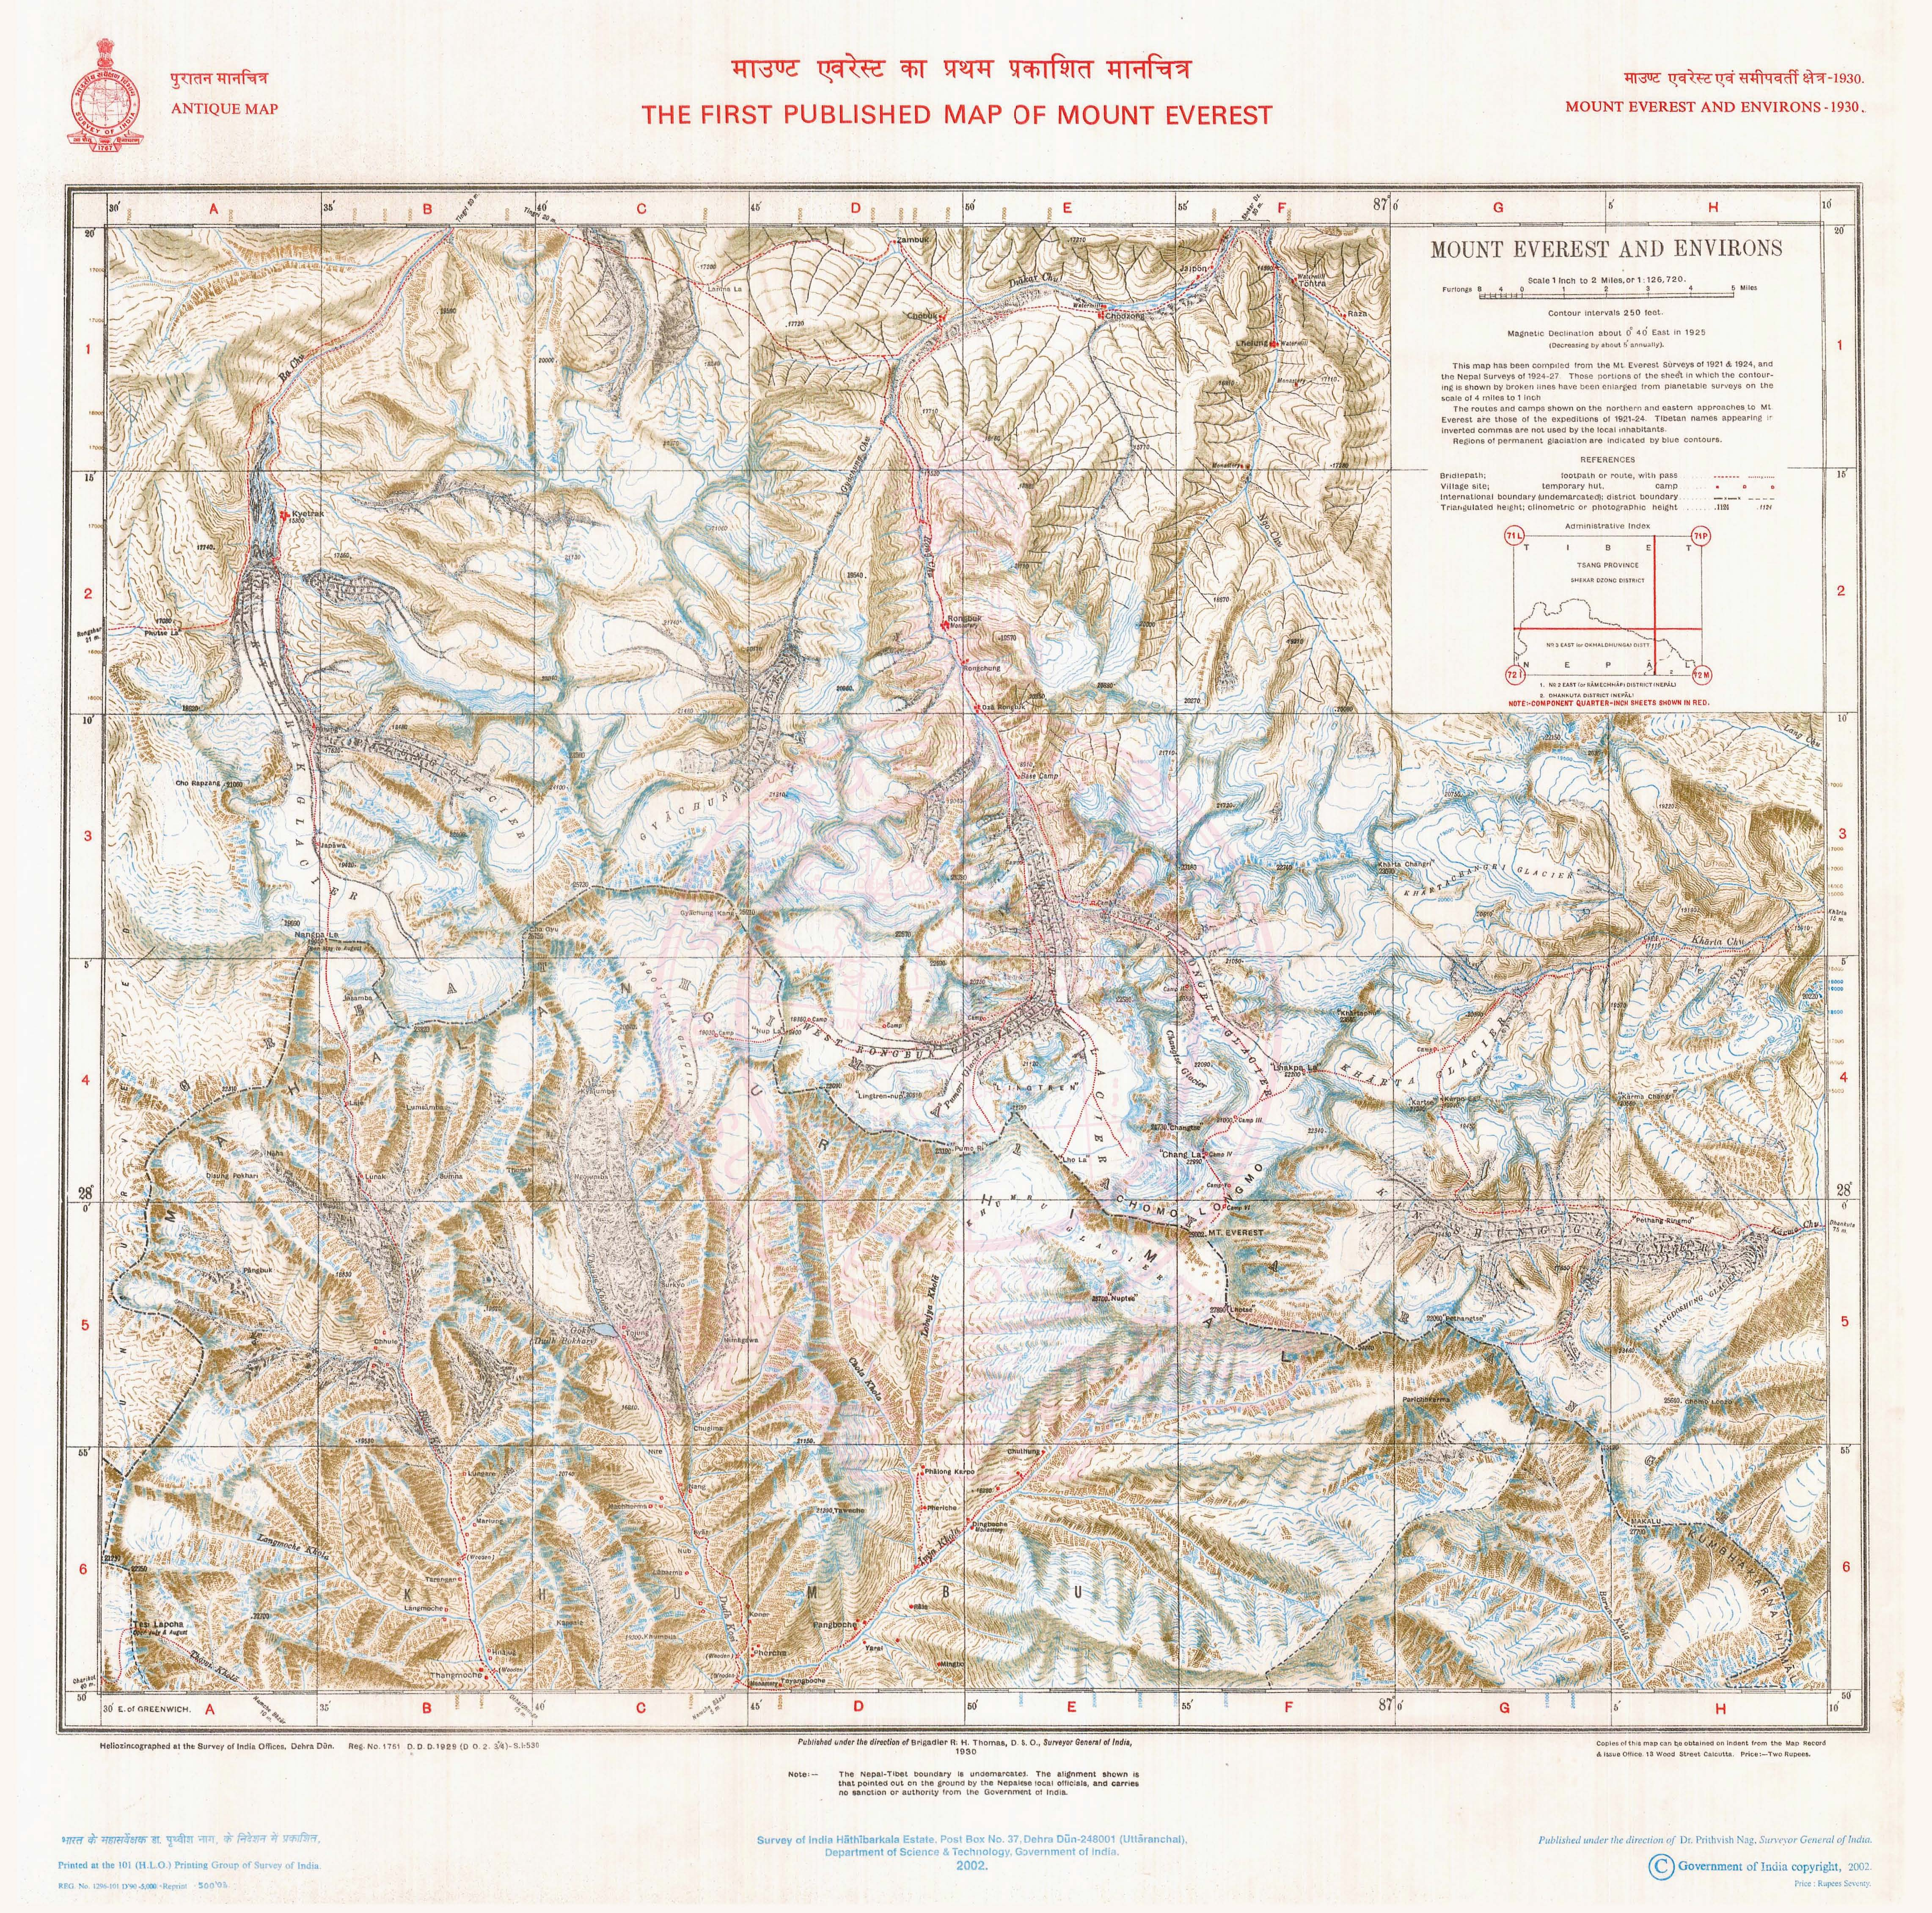 Antique Maps Survey Of India - Old maps for sale online